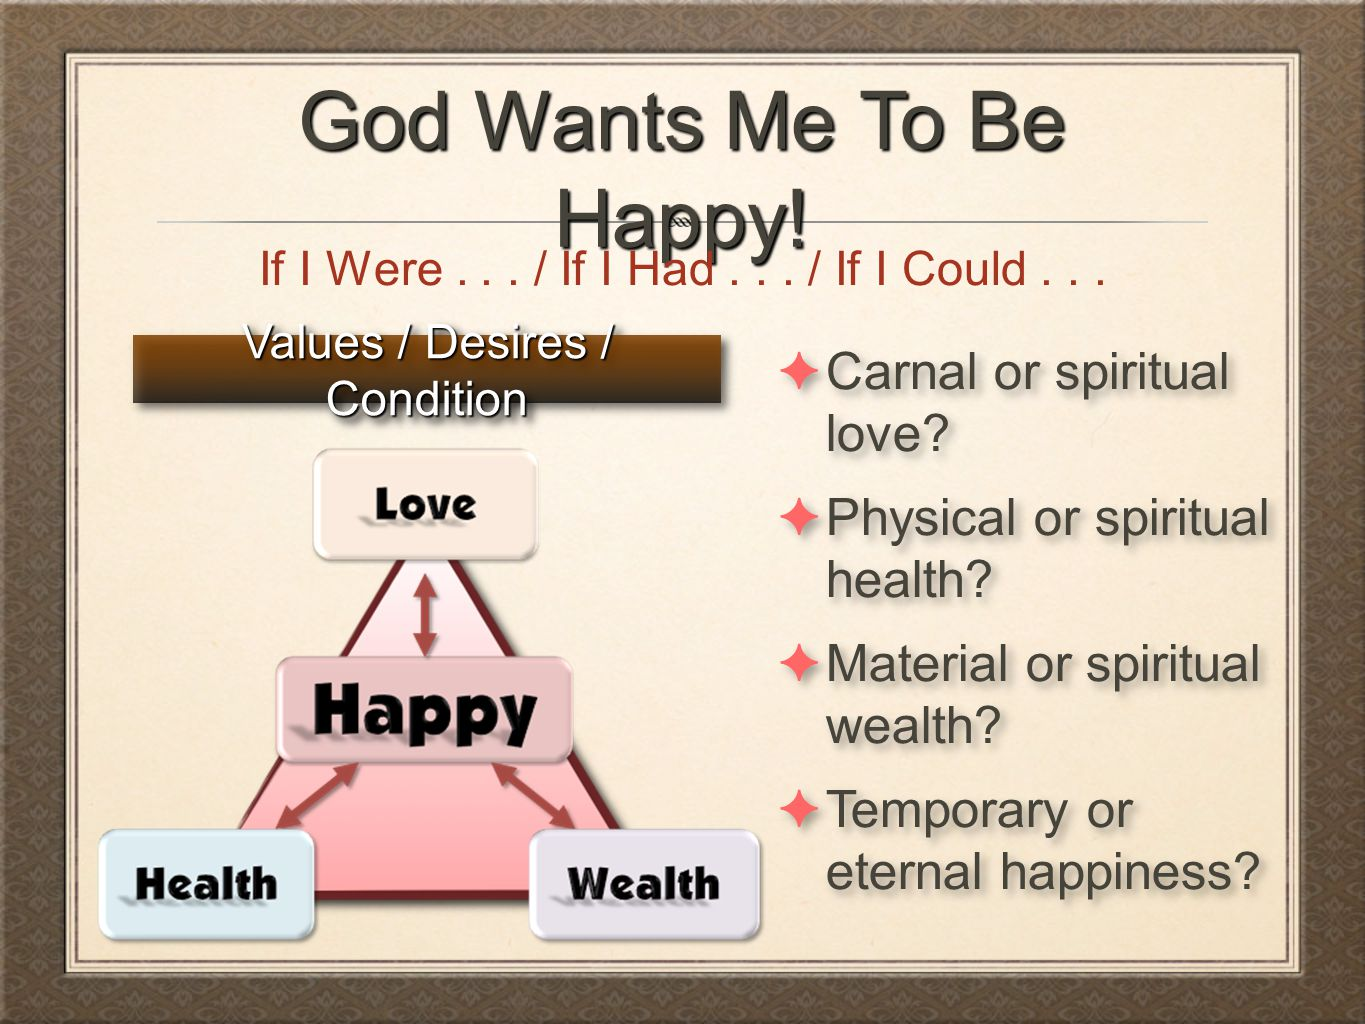 God Wants Me To Be Happy! Carnal or spiritual love